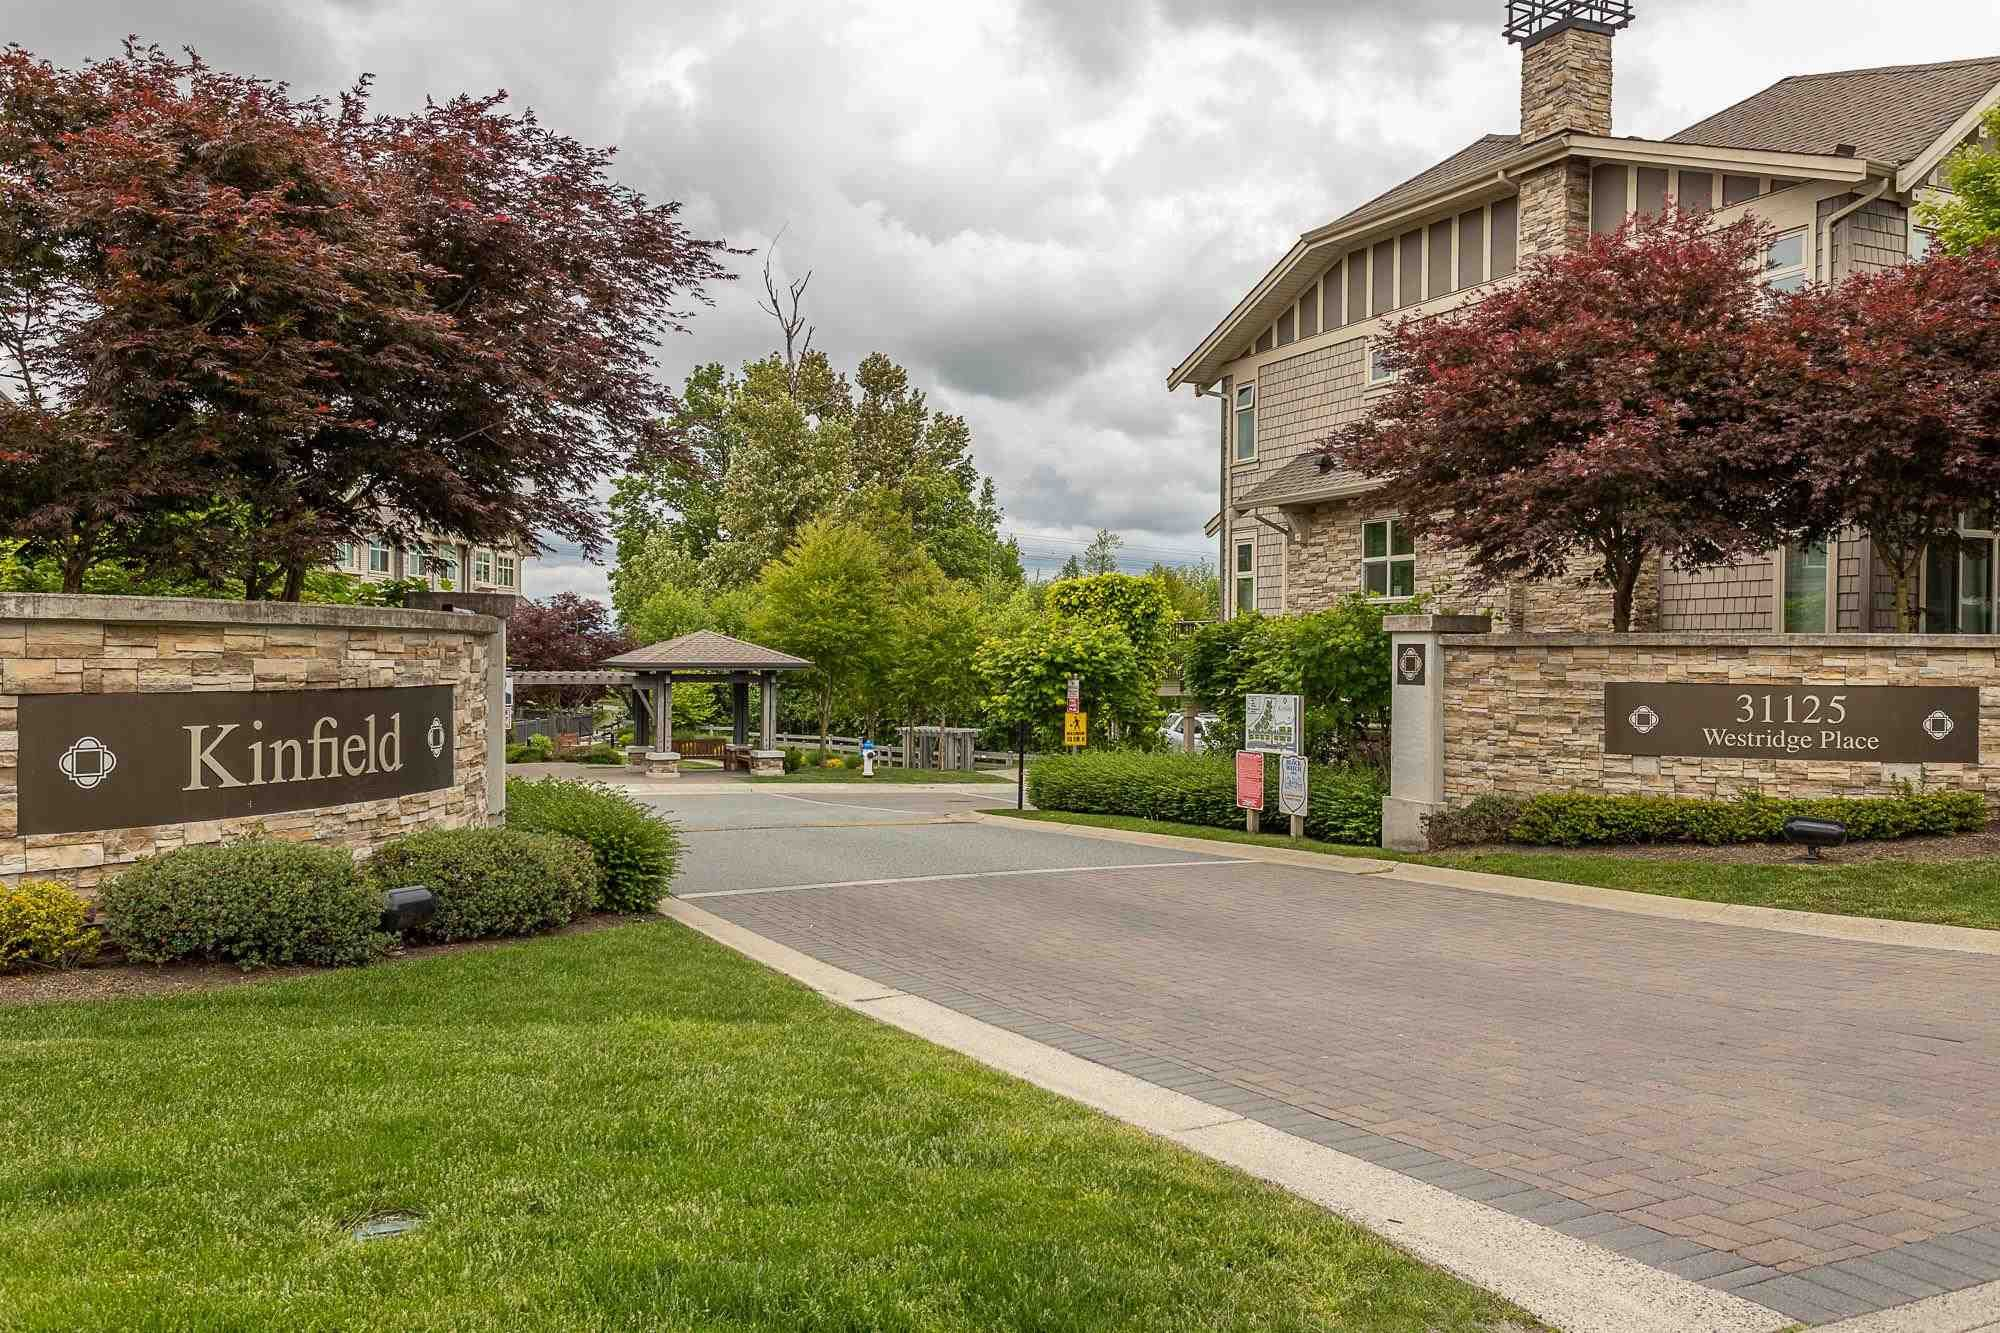 """Main Photo: 9 31125 WESTRIDGE Place in Abbotsford: Abbotsford West Townhouse for sale in """"Kinfield at Westerleigh"""" : MLS®# R2605091"""